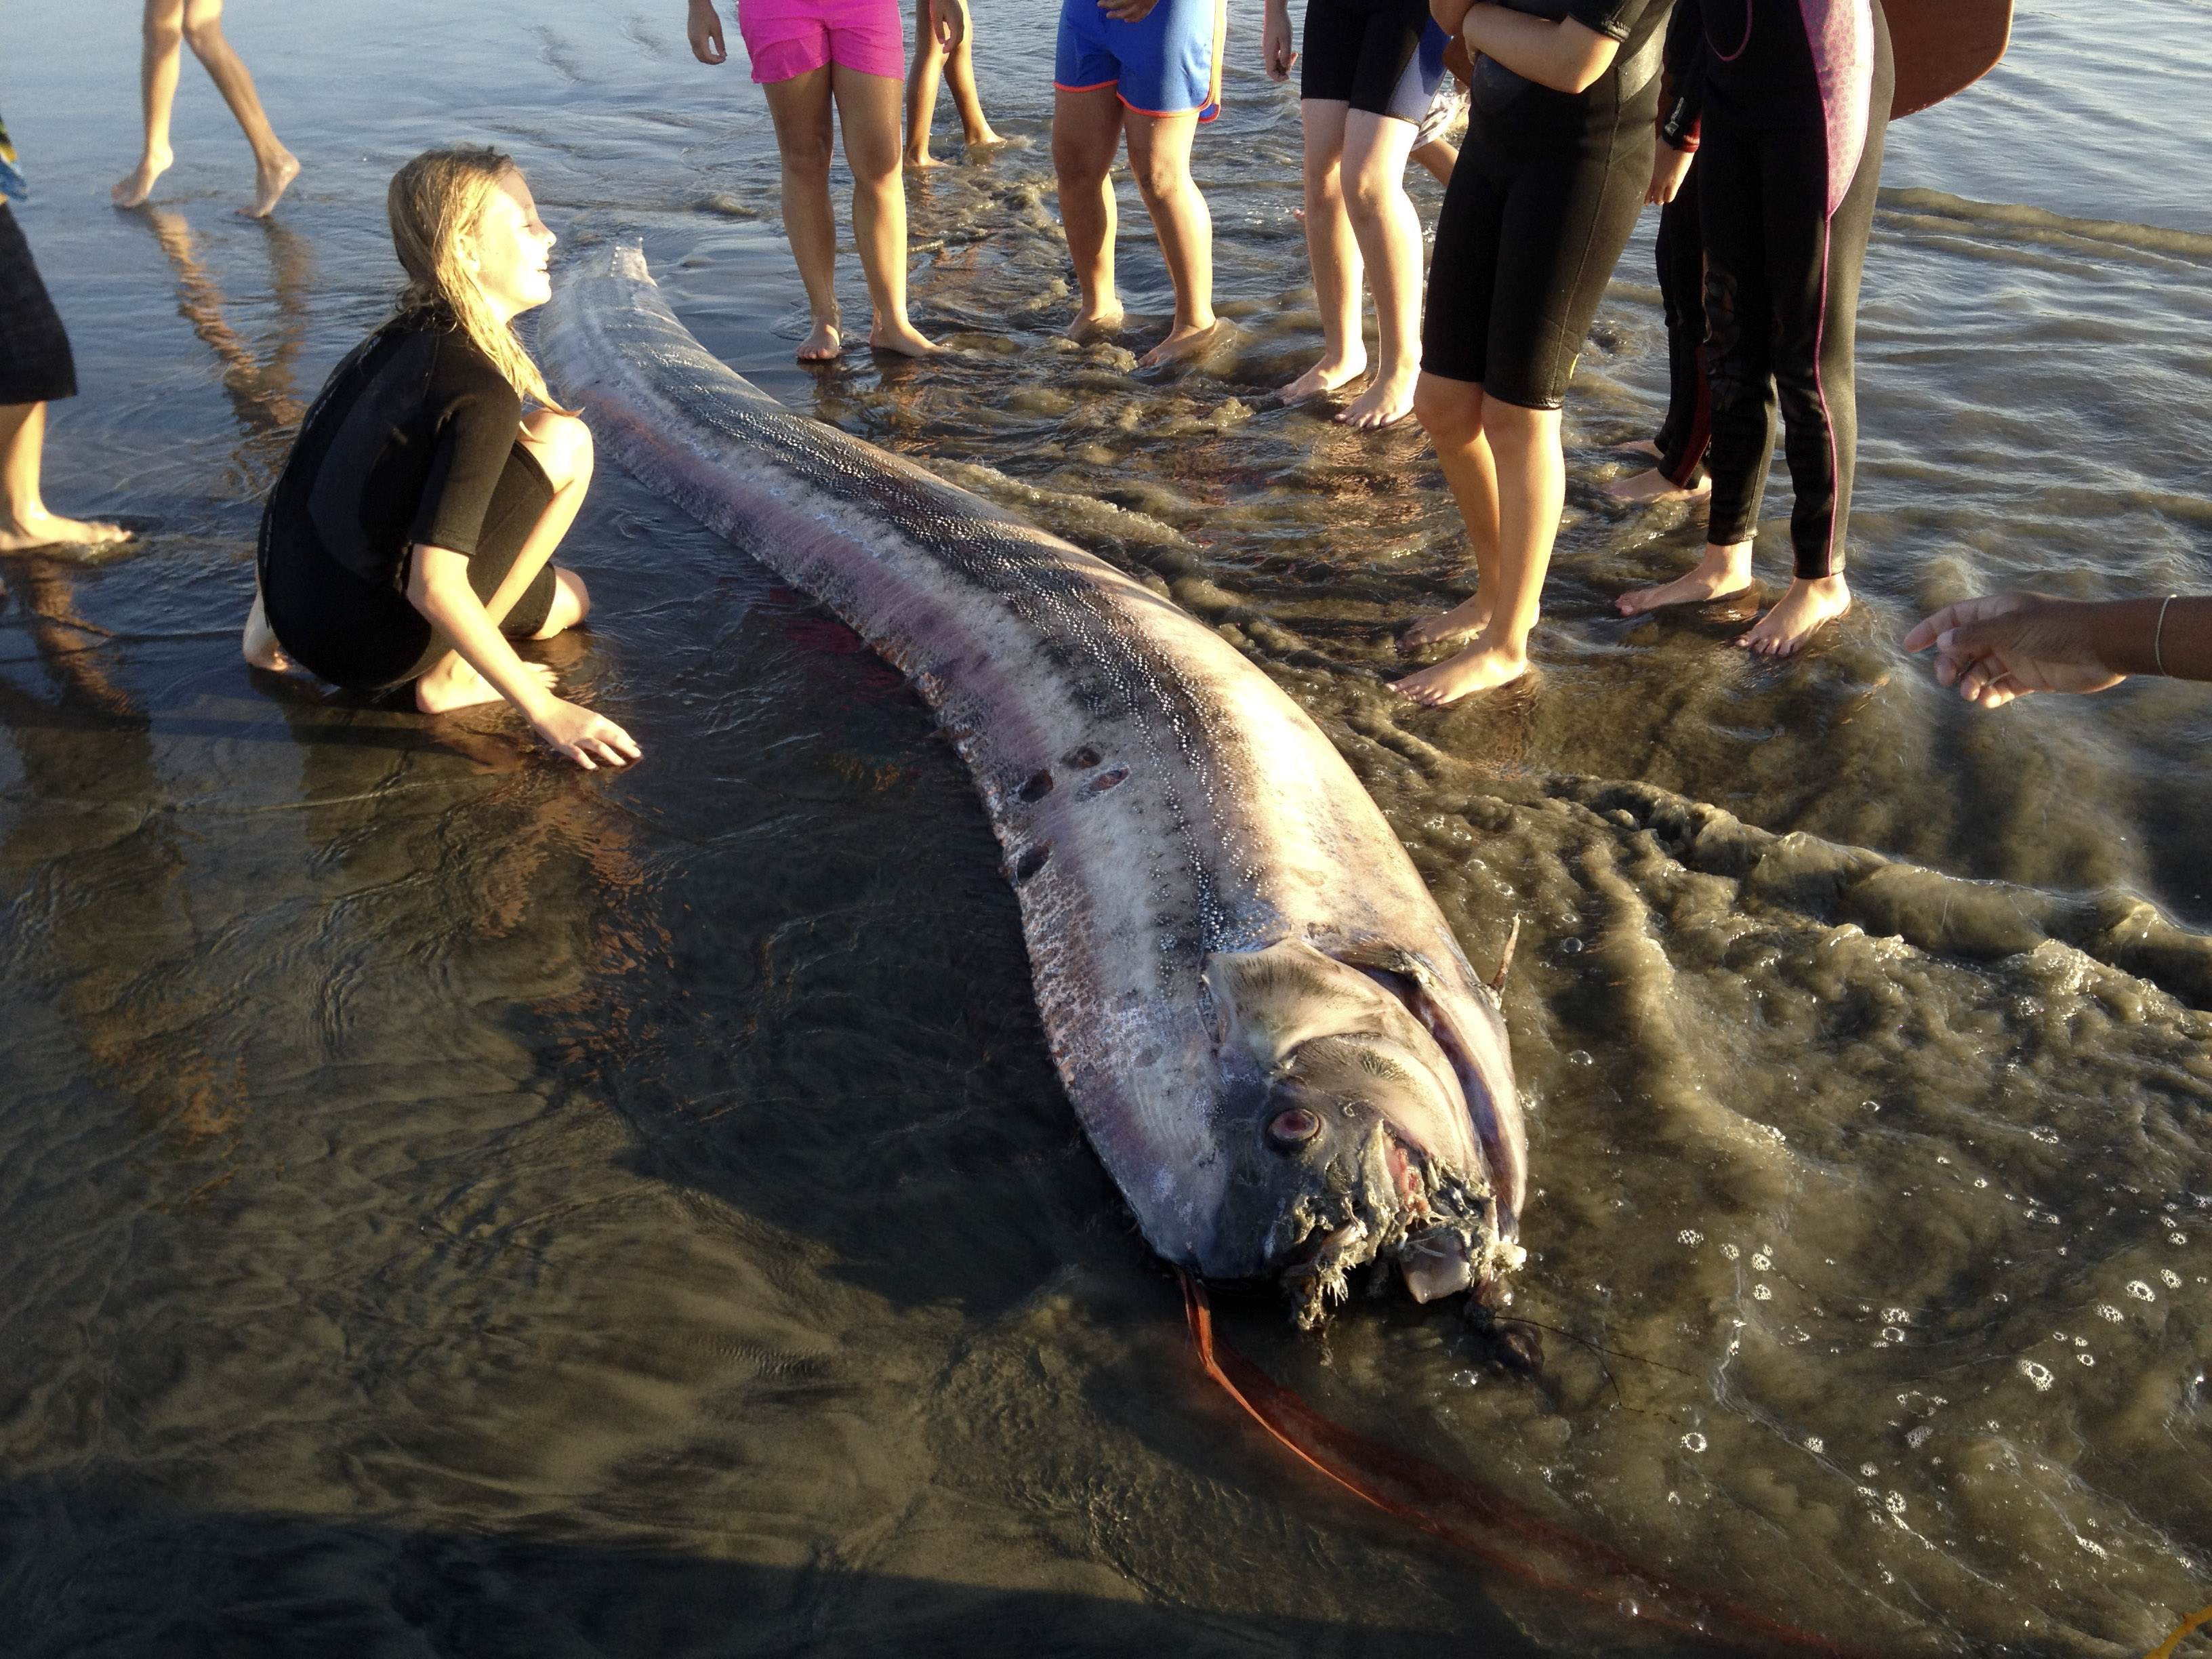 New 14-foot 'sea serpent' found in Southern California